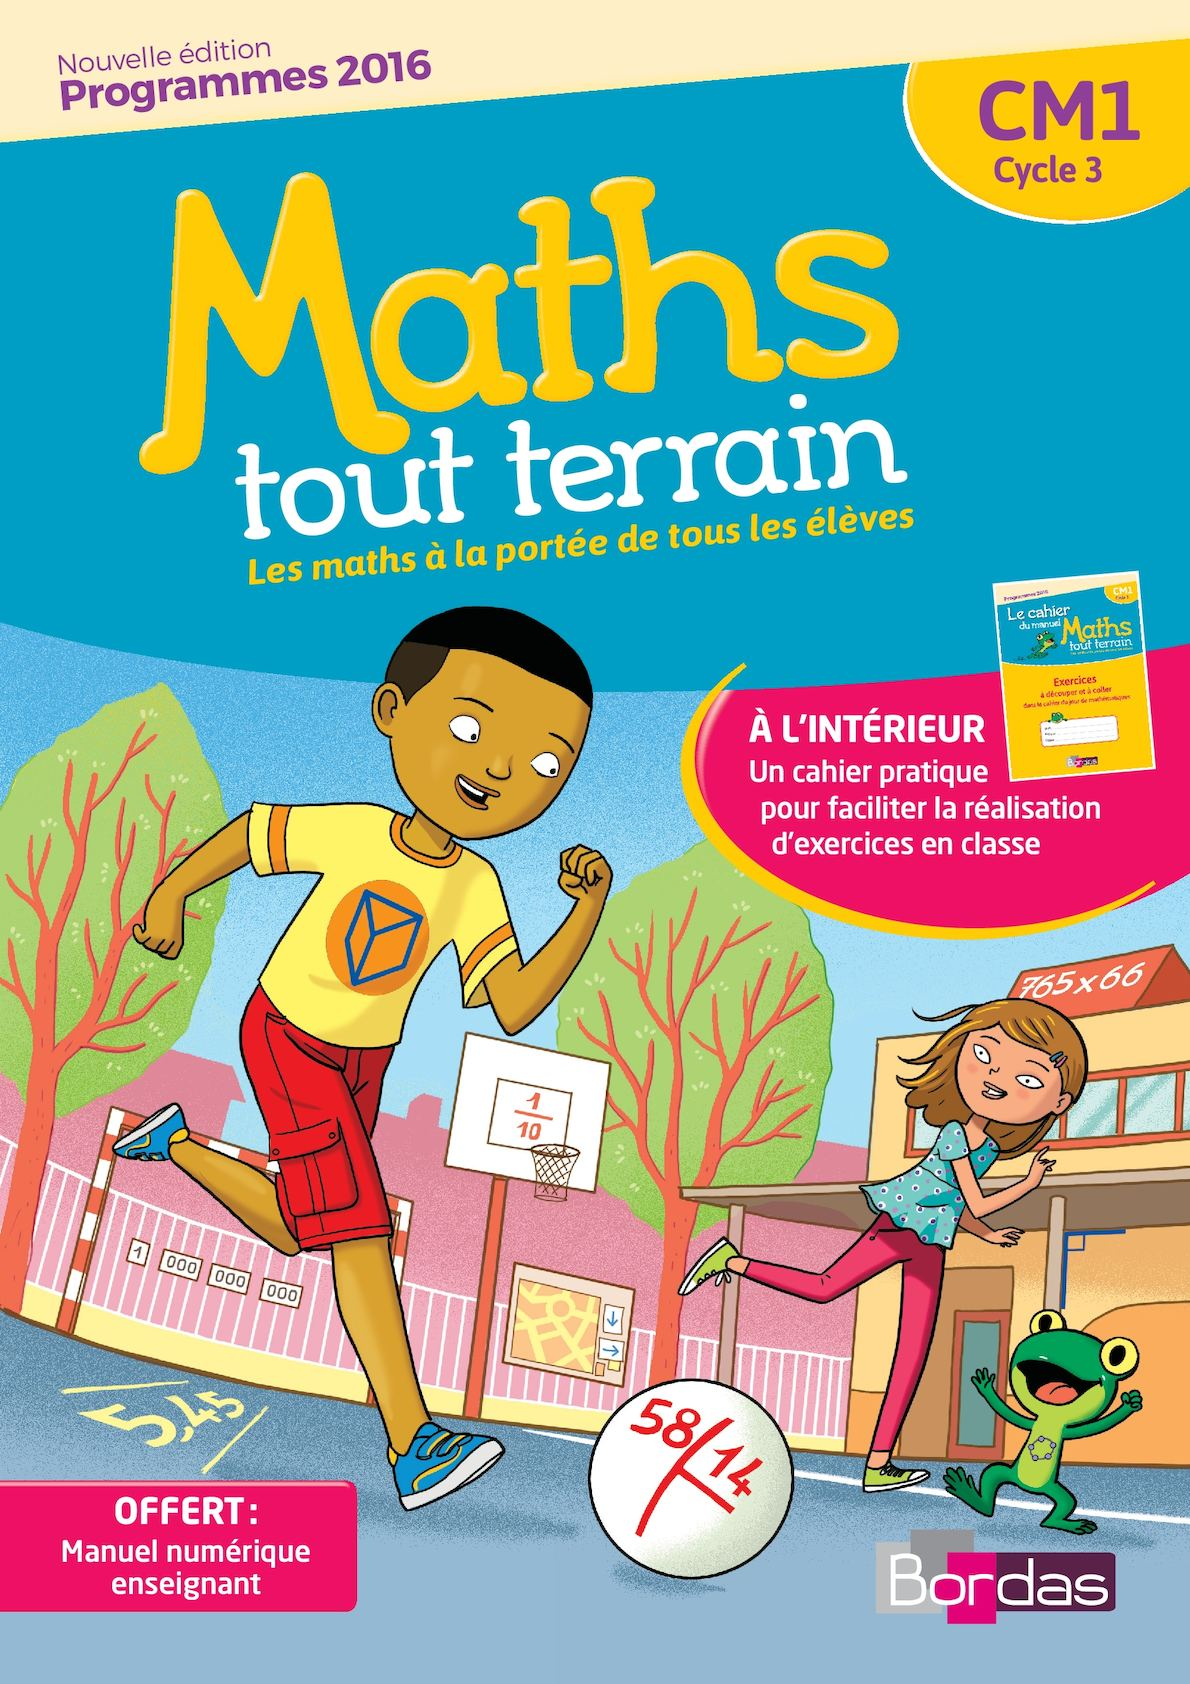 Calam o maths tout terrain cm1 for A portee de maths cm1